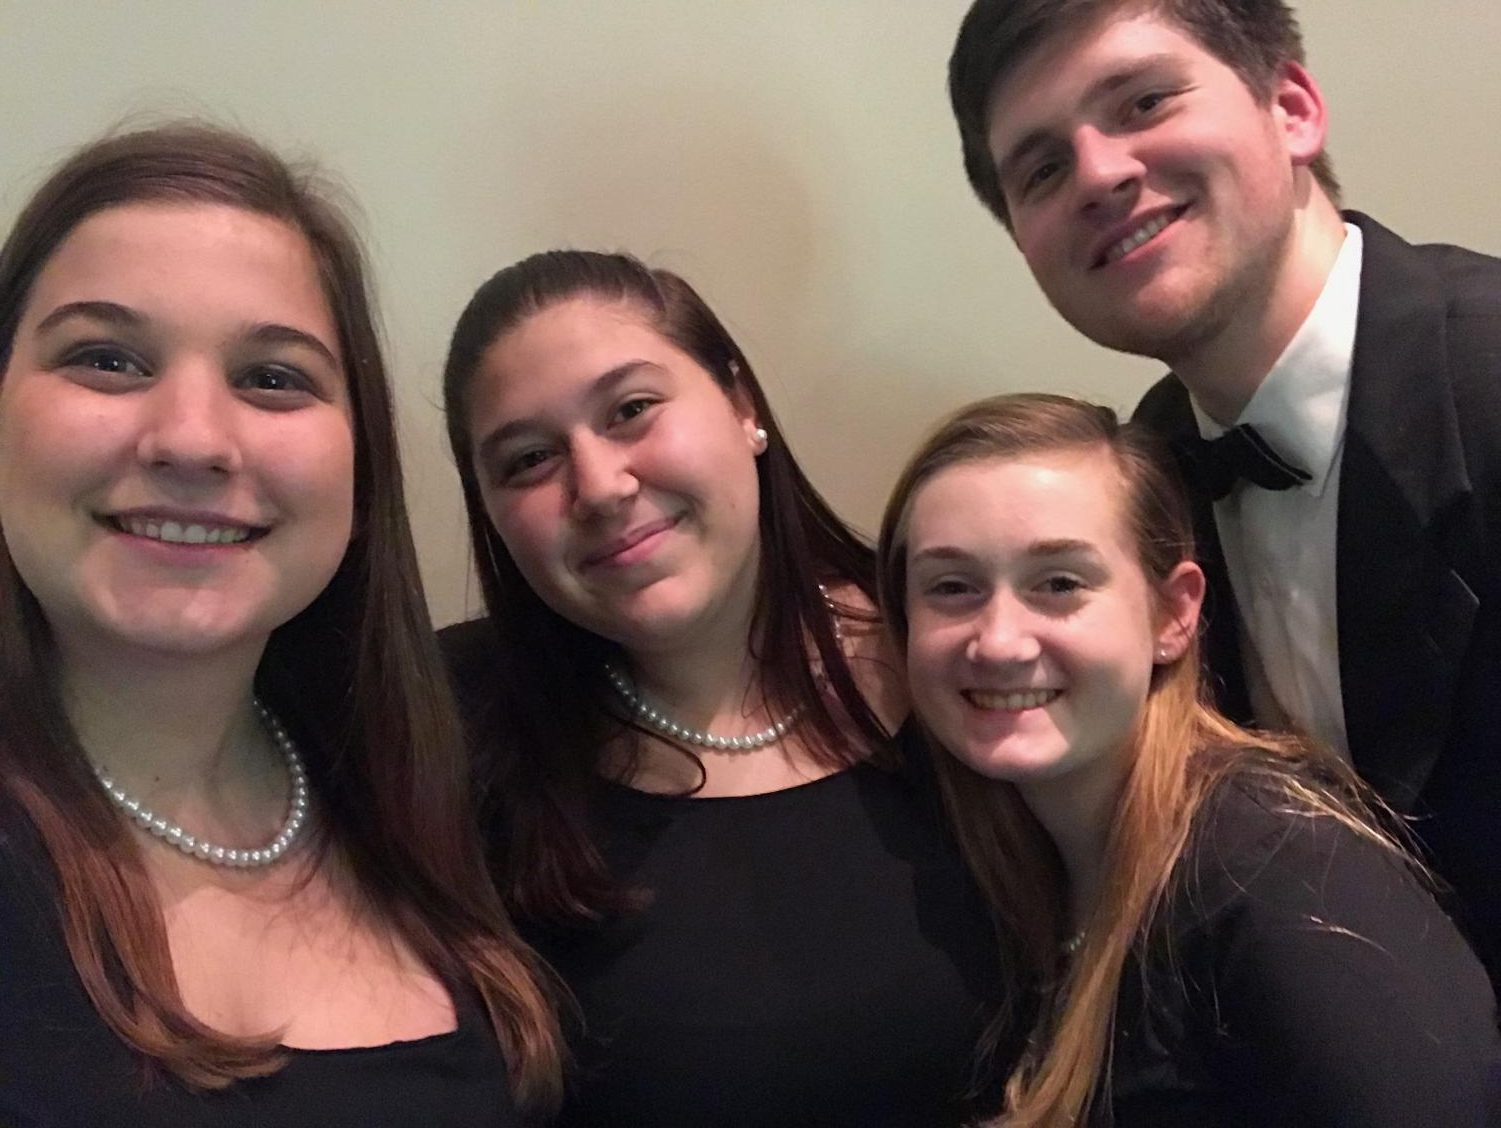 Eppers (far left) with fellow North Penn singers at a choir concert.